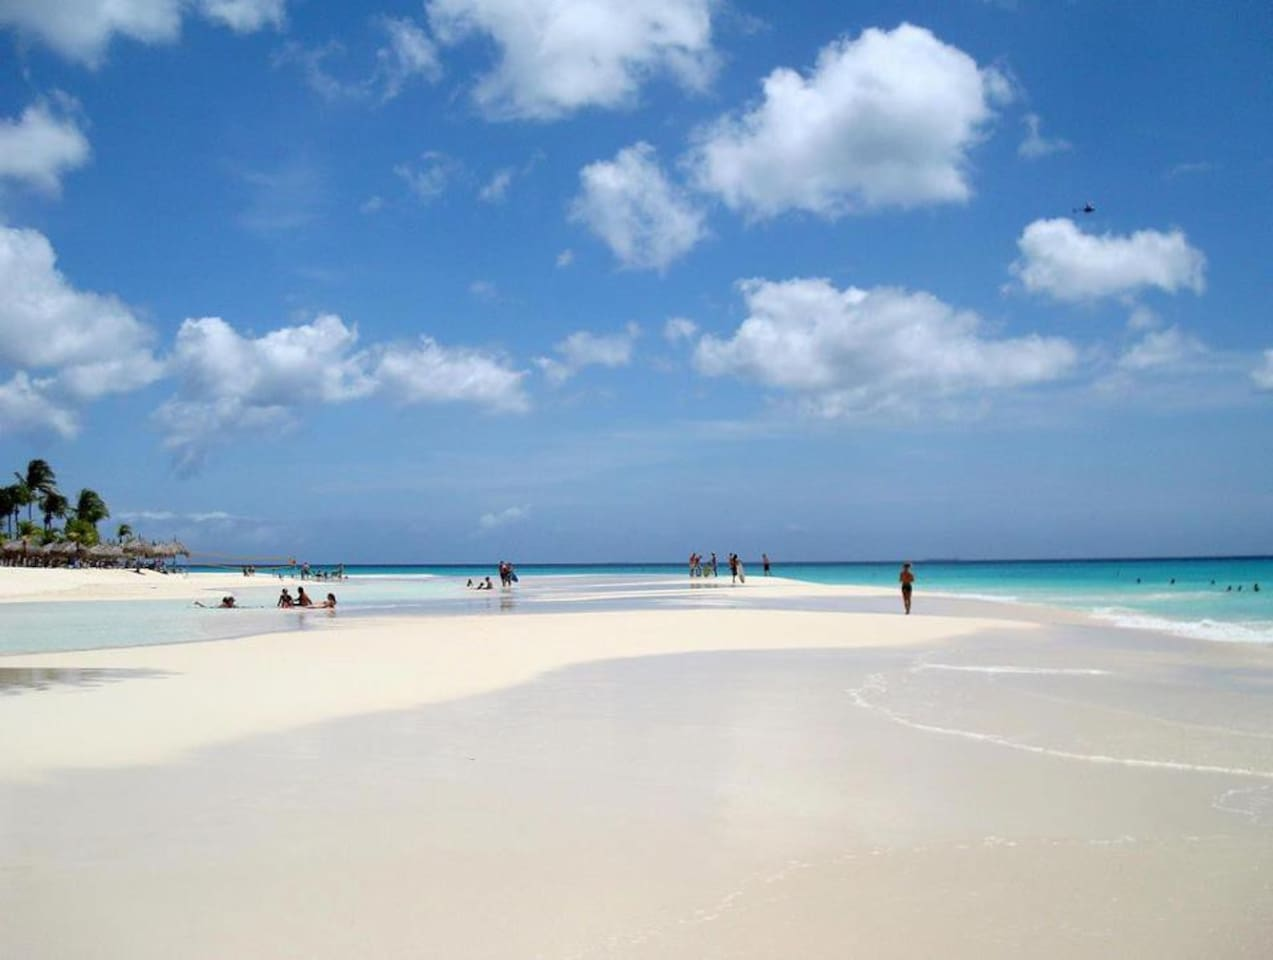 Eagle Beach!... Rated best beach in the caribean (USA Today) & 2nd best beach in the caribbean (TripAdvisor).  Not to shabby...